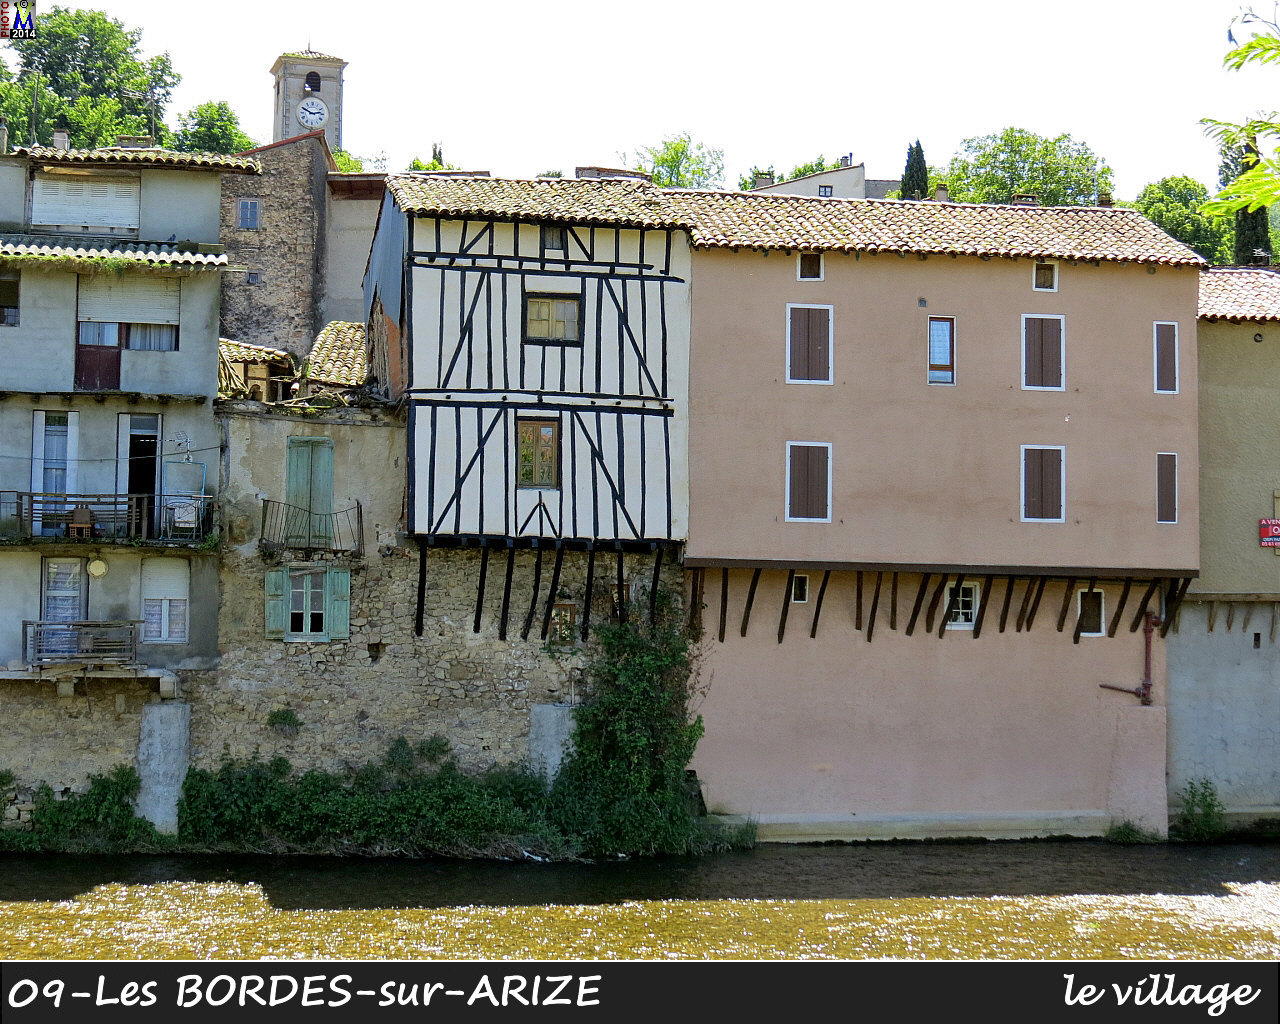 09BORDES-ARIZE_village_104.jpg